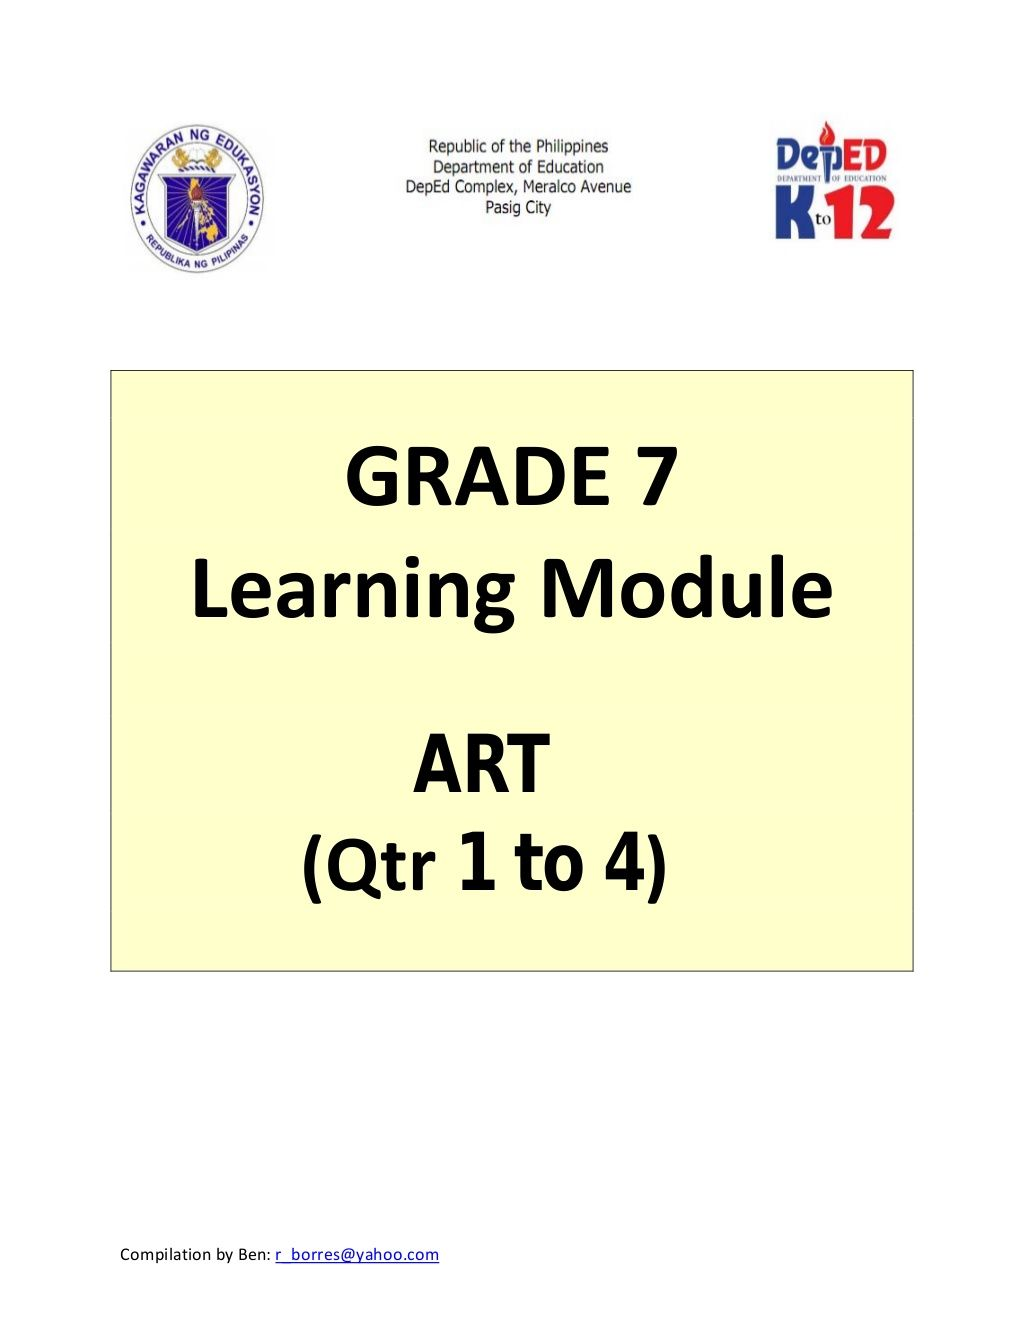 Grade 7 Learning Module In Art Quarter 1 To 4 Education Quotes Education Math Big Ideas Math [ 1326 x 1024 Pixel ]